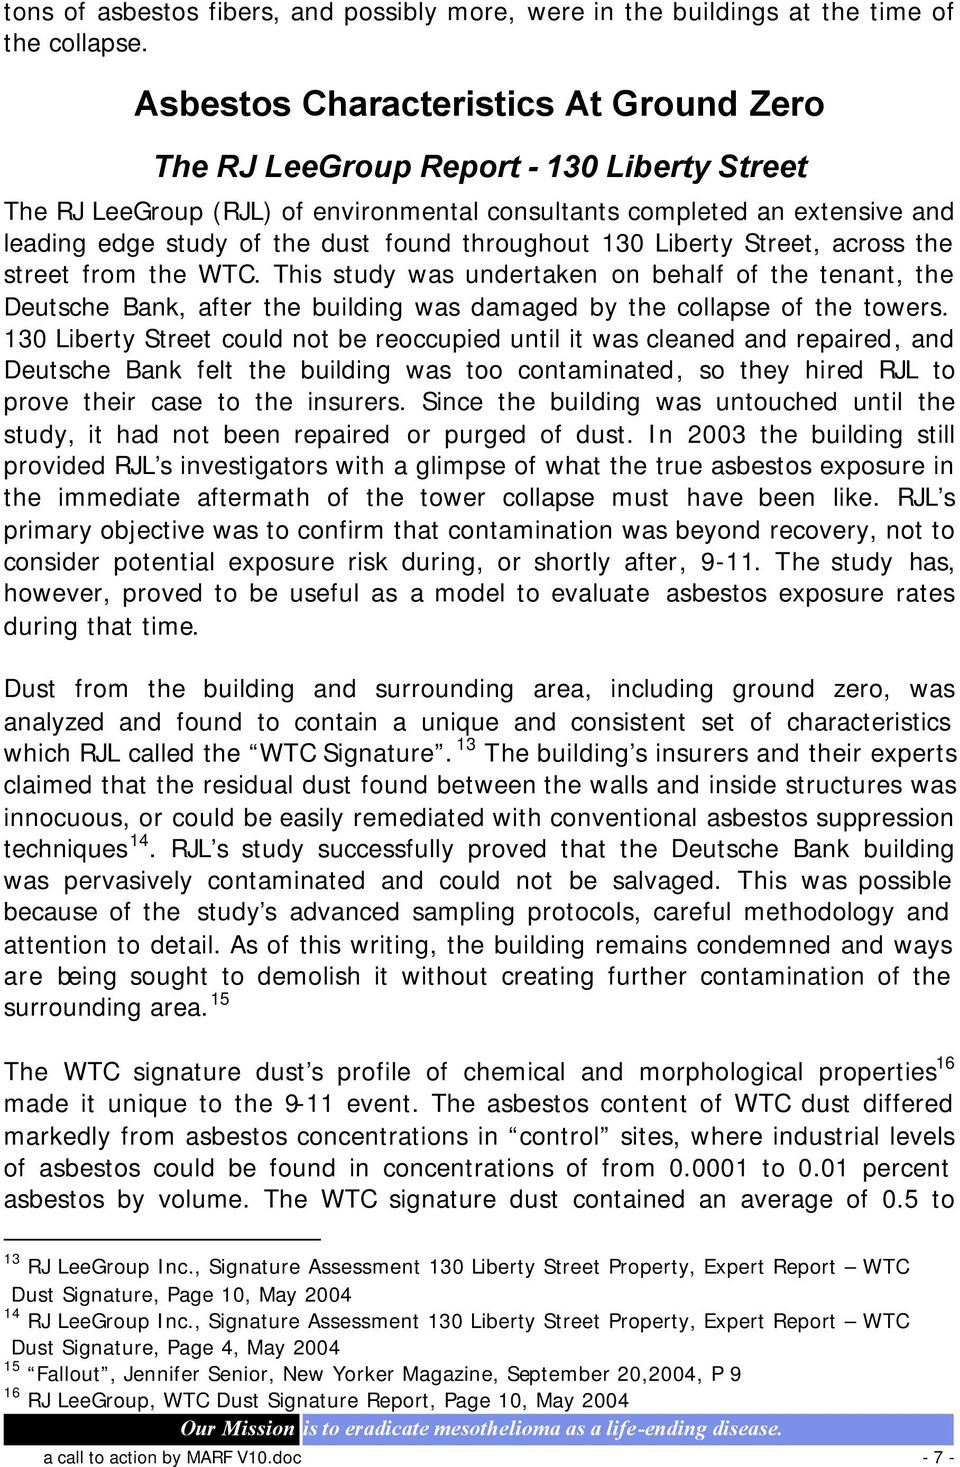 throughout 130 Liberty Street, across the street from the WTC. This study was undertaken on behalf of the tenant, the Deutsche Bank, after the building was damaged by the collapse of the towers.